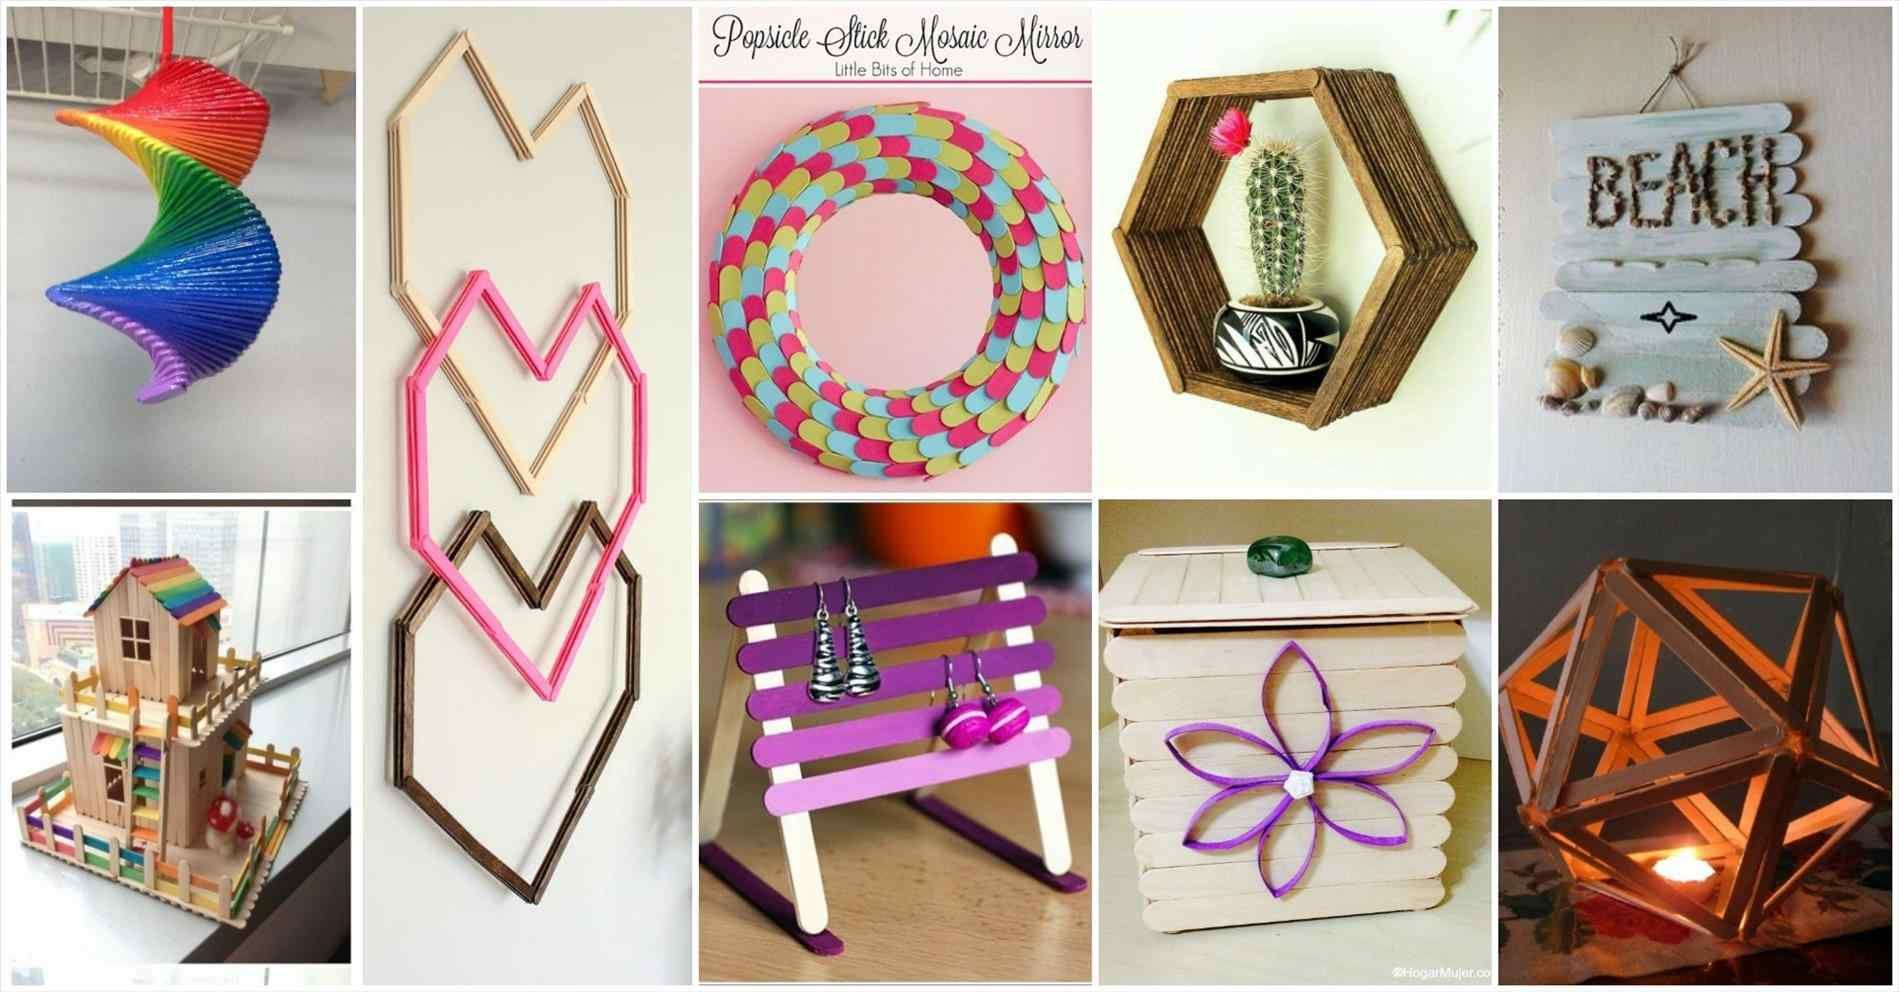 13 Diy Decorative Popsicle Sticks Ideas Diy And Crafts Sewing Wall Art Diy Easy Diy Popsicle